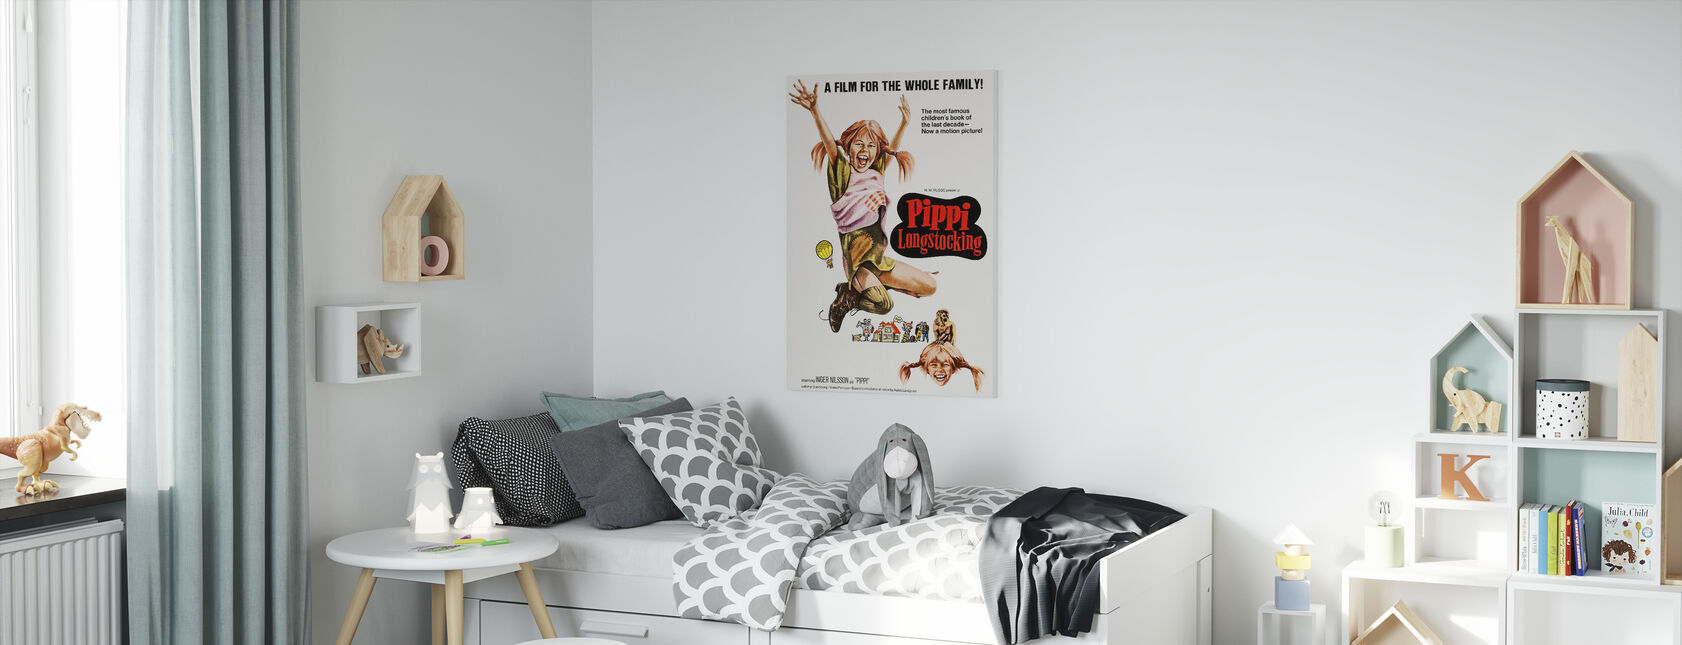 Pippi Longstocking - Canvas print - Kids Room